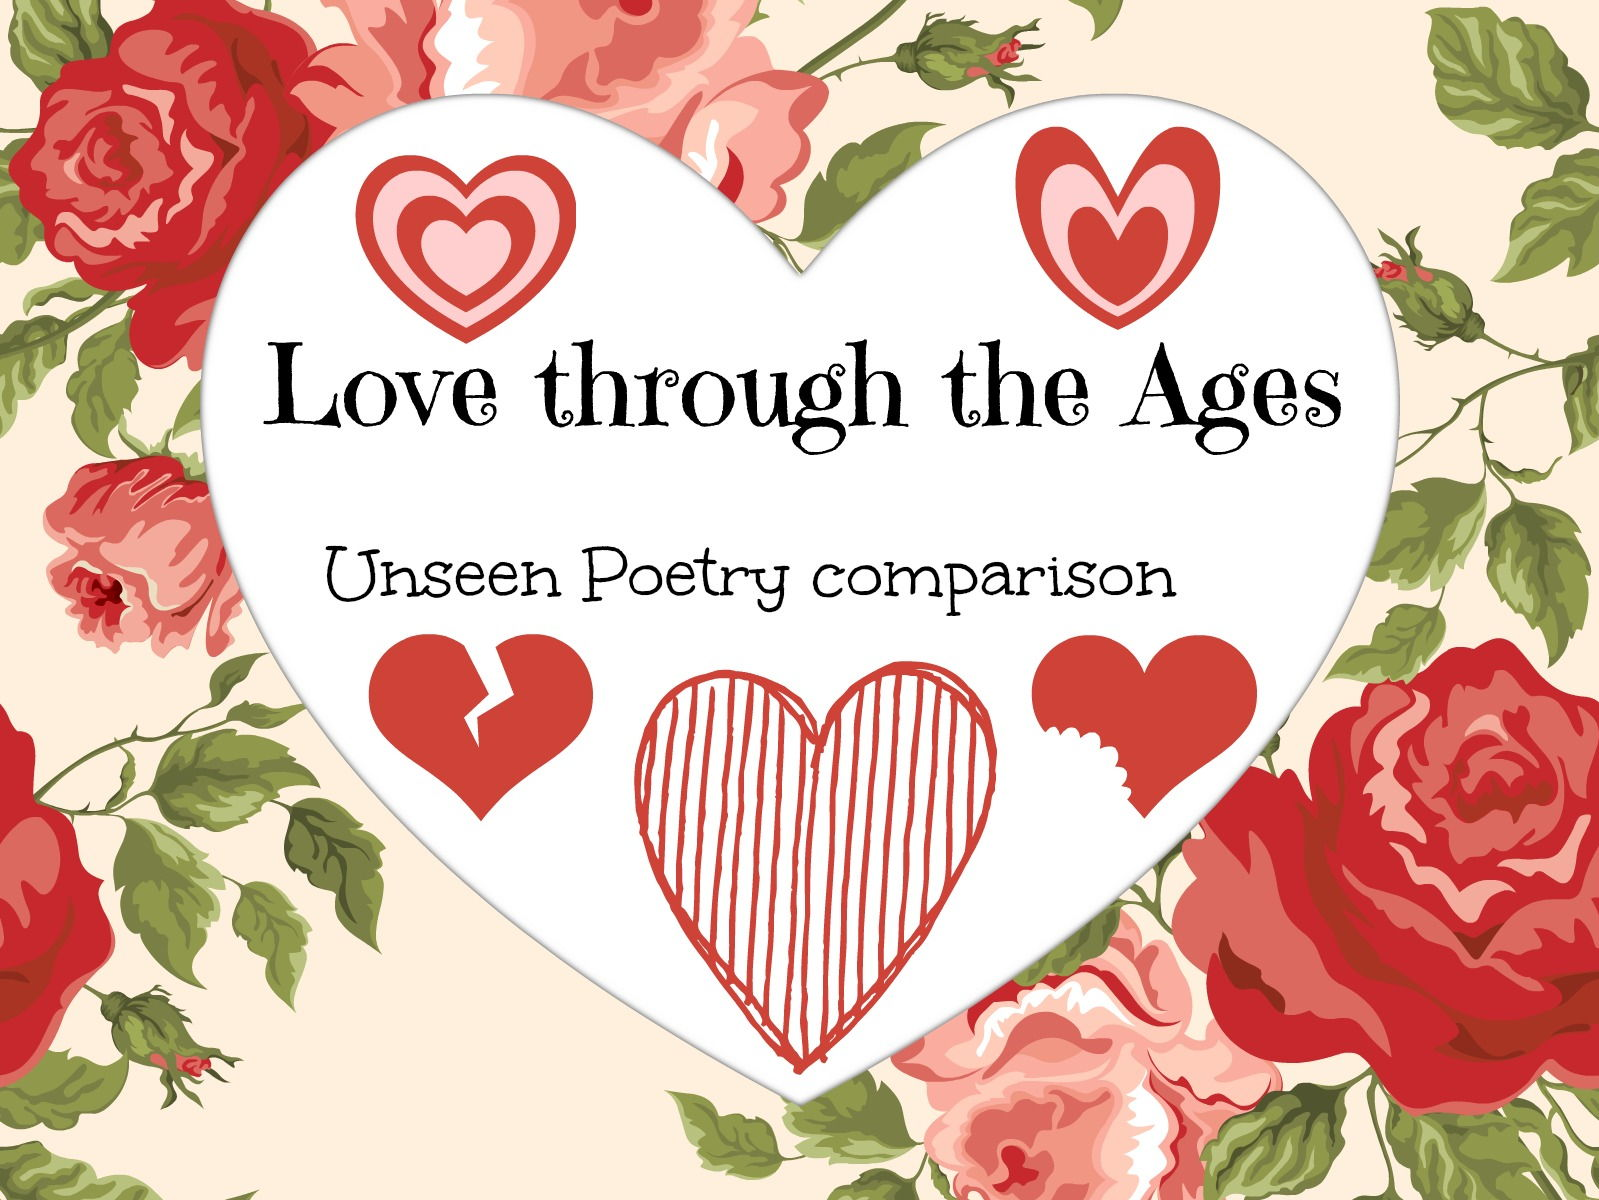 Unseen poetry comparison: the full works- AQA Love through the Ages